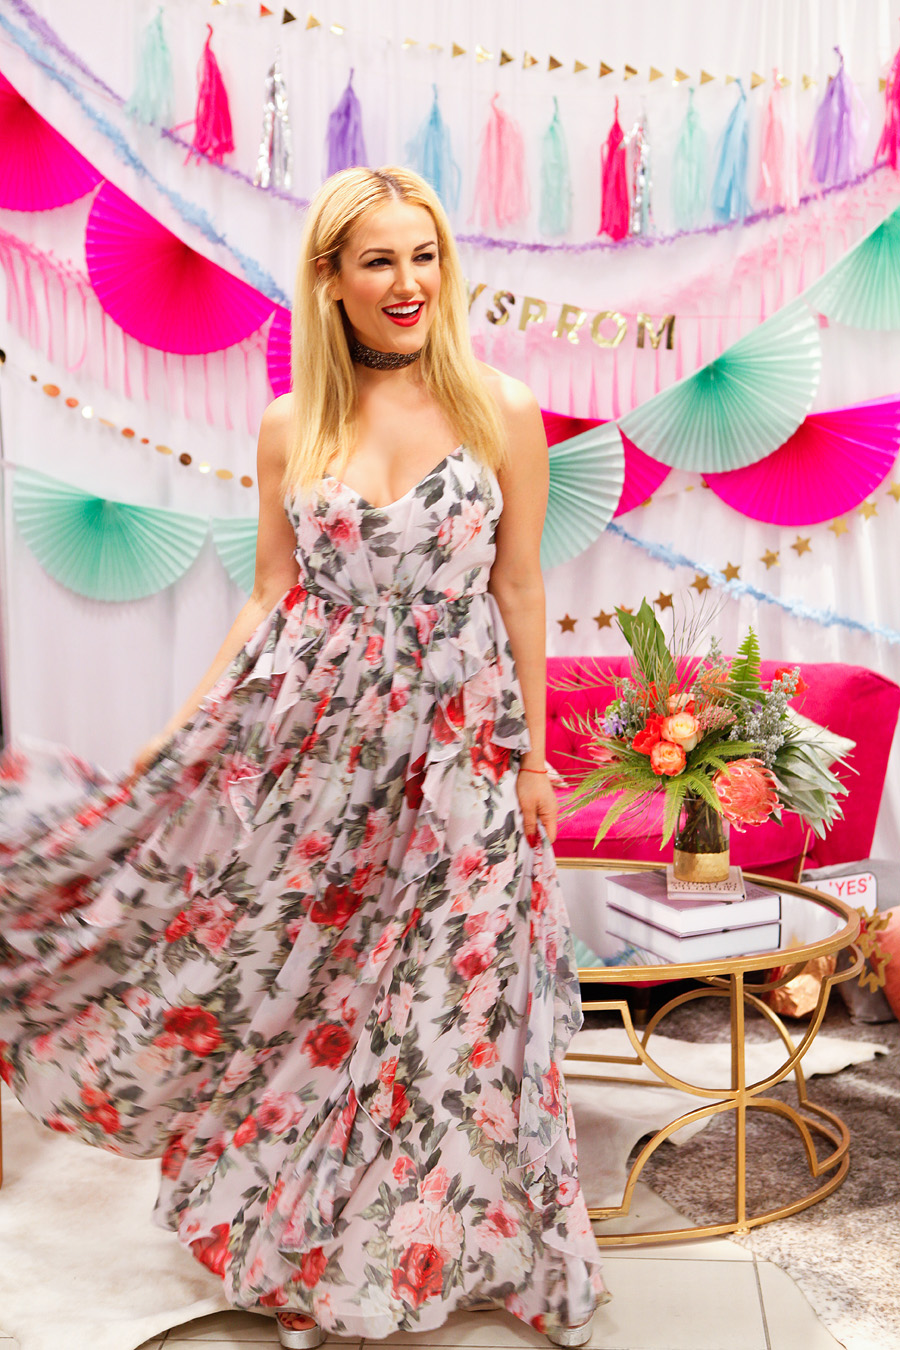 prom dress stores in woodfield mall – Fashion dresses